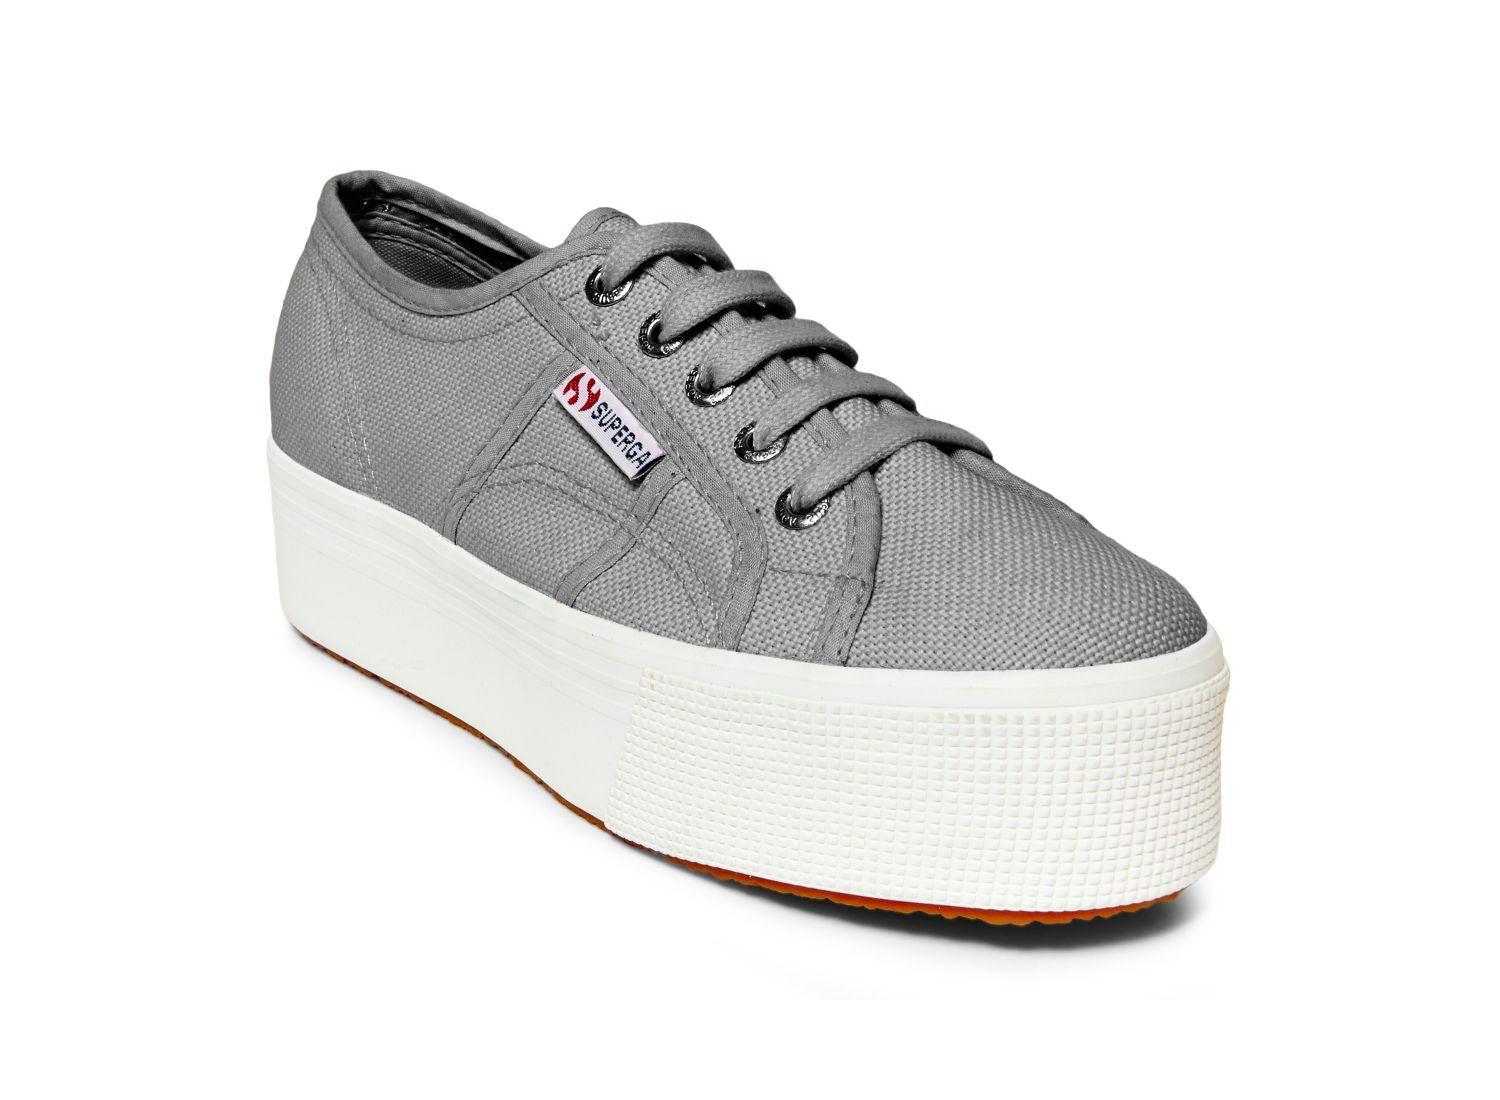 "Superga 2790 - The Classic Platform Lace Sneaker in Grey Sage. Classic style gets a lift. Simple lace up silhouette sneaker raised on a 1.5"" rubber platform. Washable canvas. A trendy update to the classic sneaker."